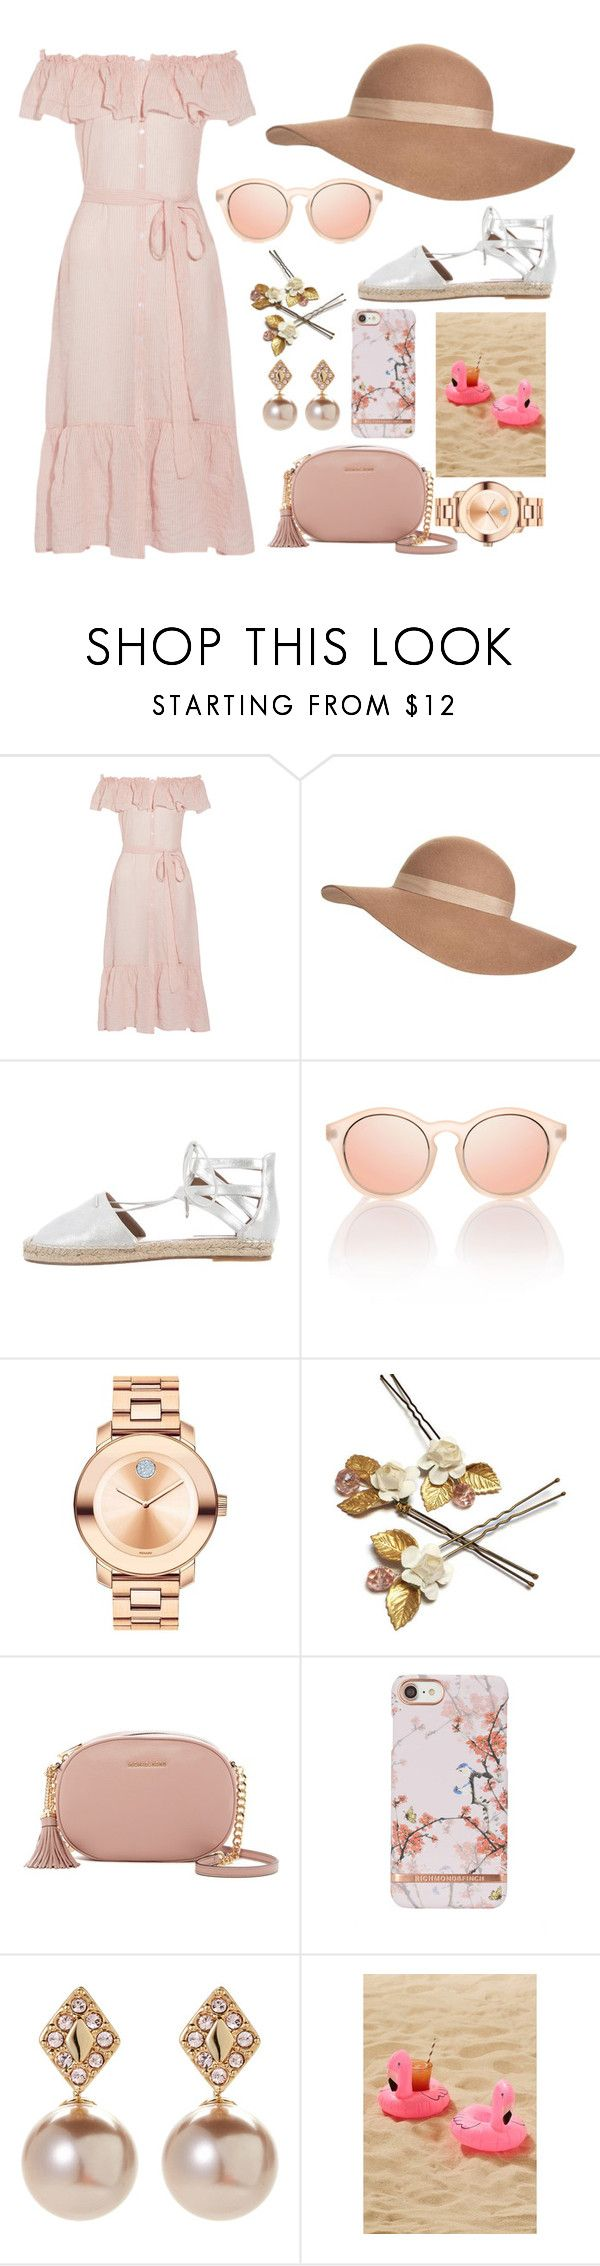 """""""Summer at the beach"""" by maria-c-simon ❤ liked on Polyvore featuring Lisa Marie Fernandez, Jack Wills, Aquazzura, Le Specs, Movado, MICHAEL Michael Kors, Ivanka Trump and Urban Outfitters"""